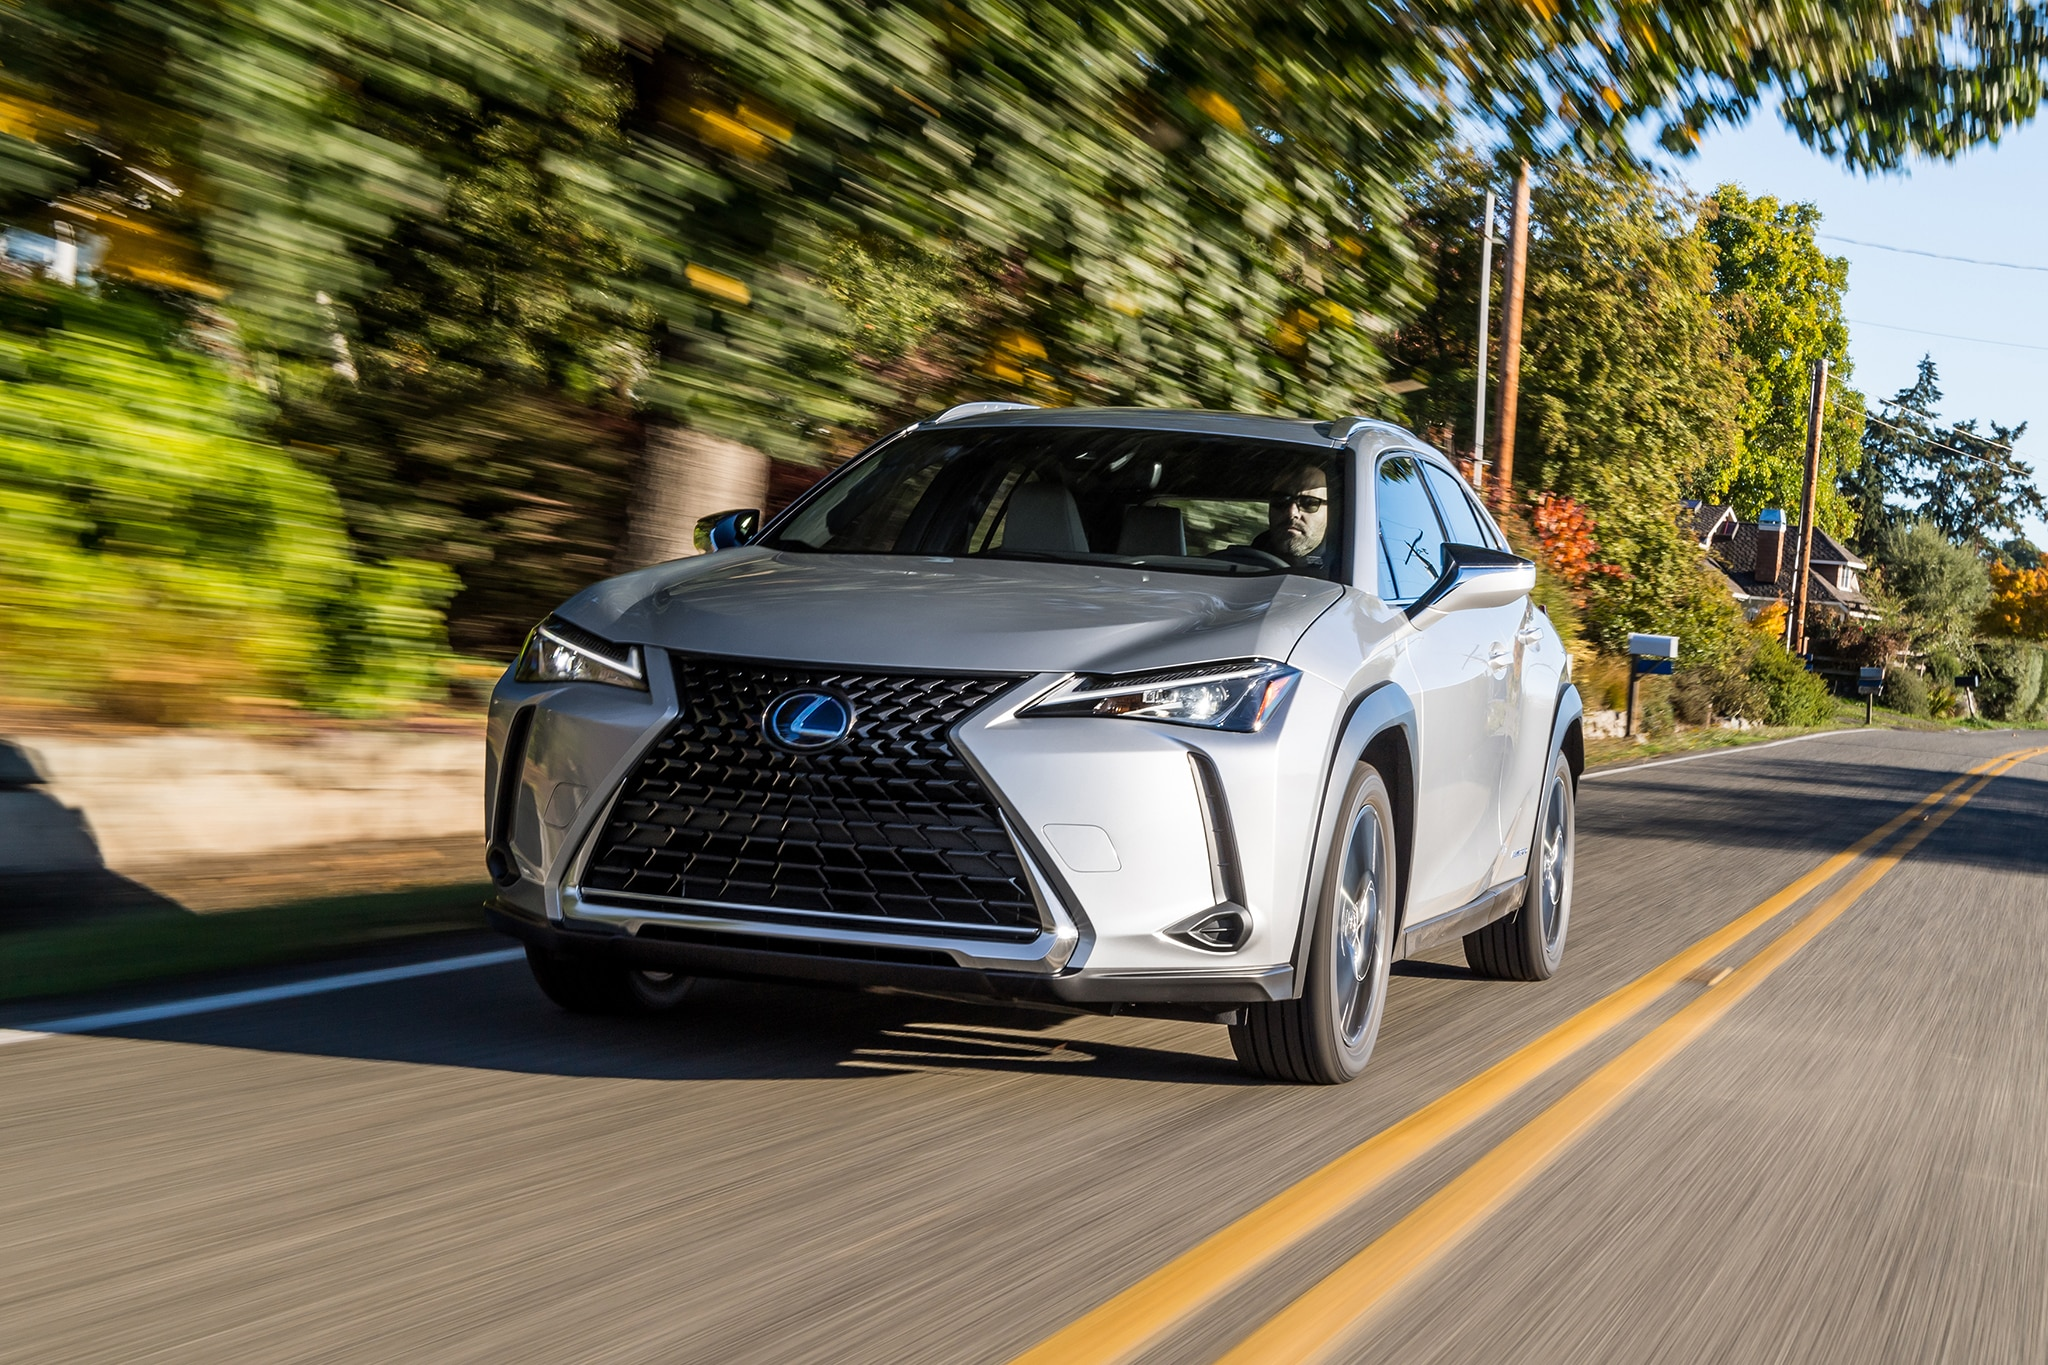 2019 Lexus UX250h Hybrid Review: Small, Size, Big ...